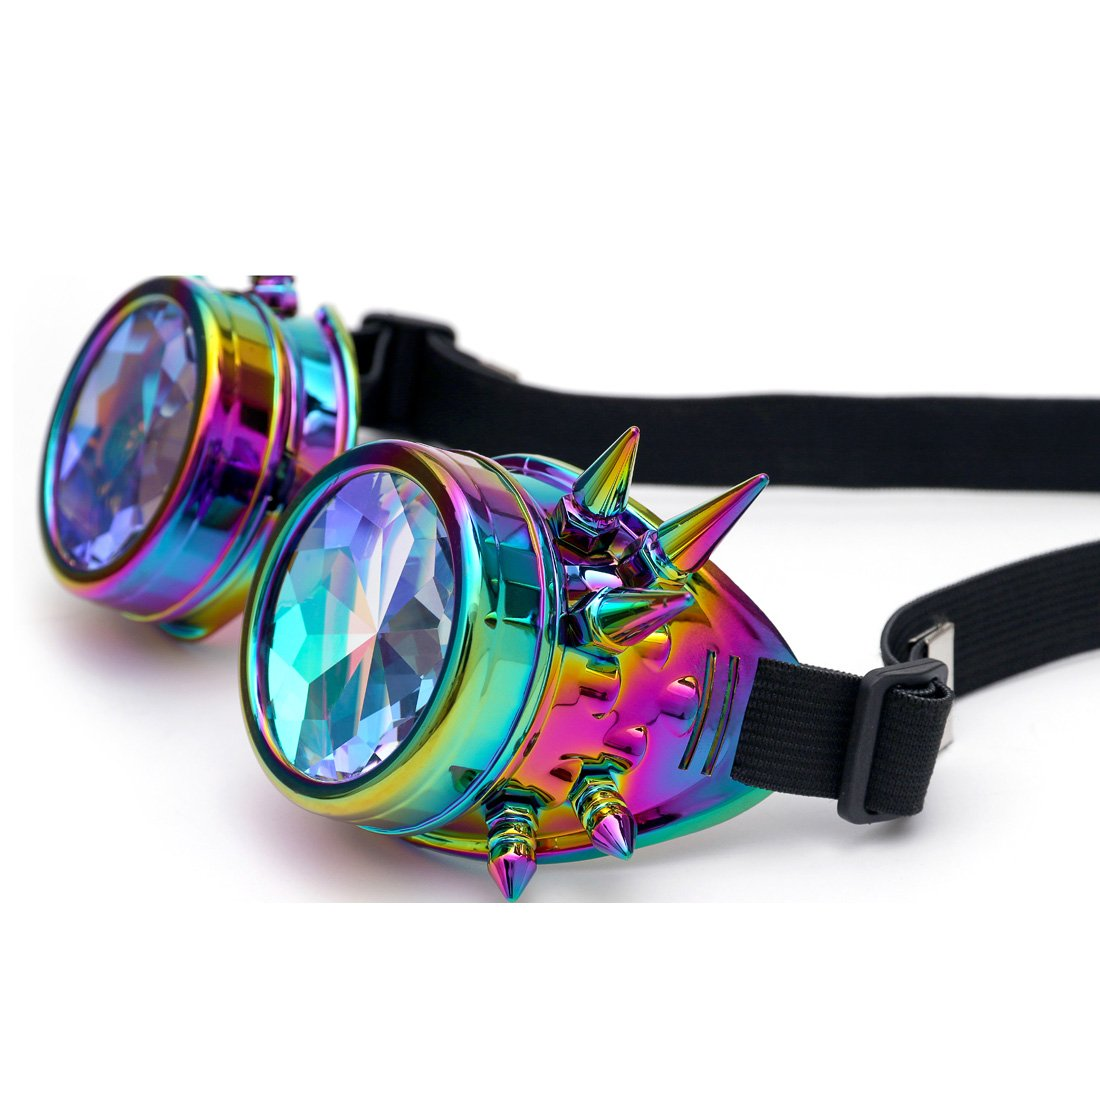 FIRSTLIKE Festivals Kaleidoscope Rainbow Glasses Prism Sunglasses Goggles by FIRSTLIKE (Image #4)